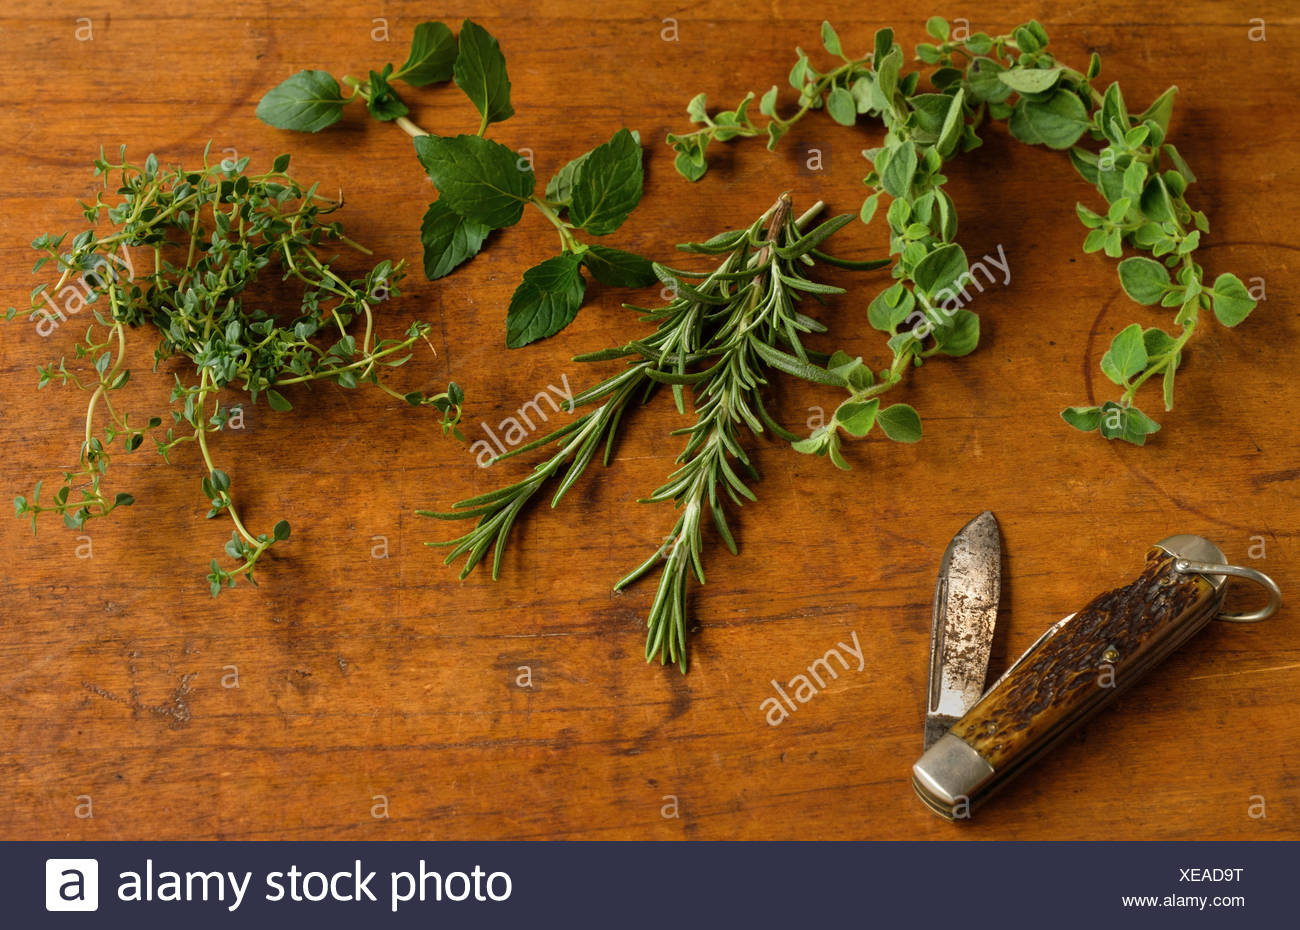 Mint, rosemary, oregano and thyme leaves next to old pocket knife on cutting board - Stock Image